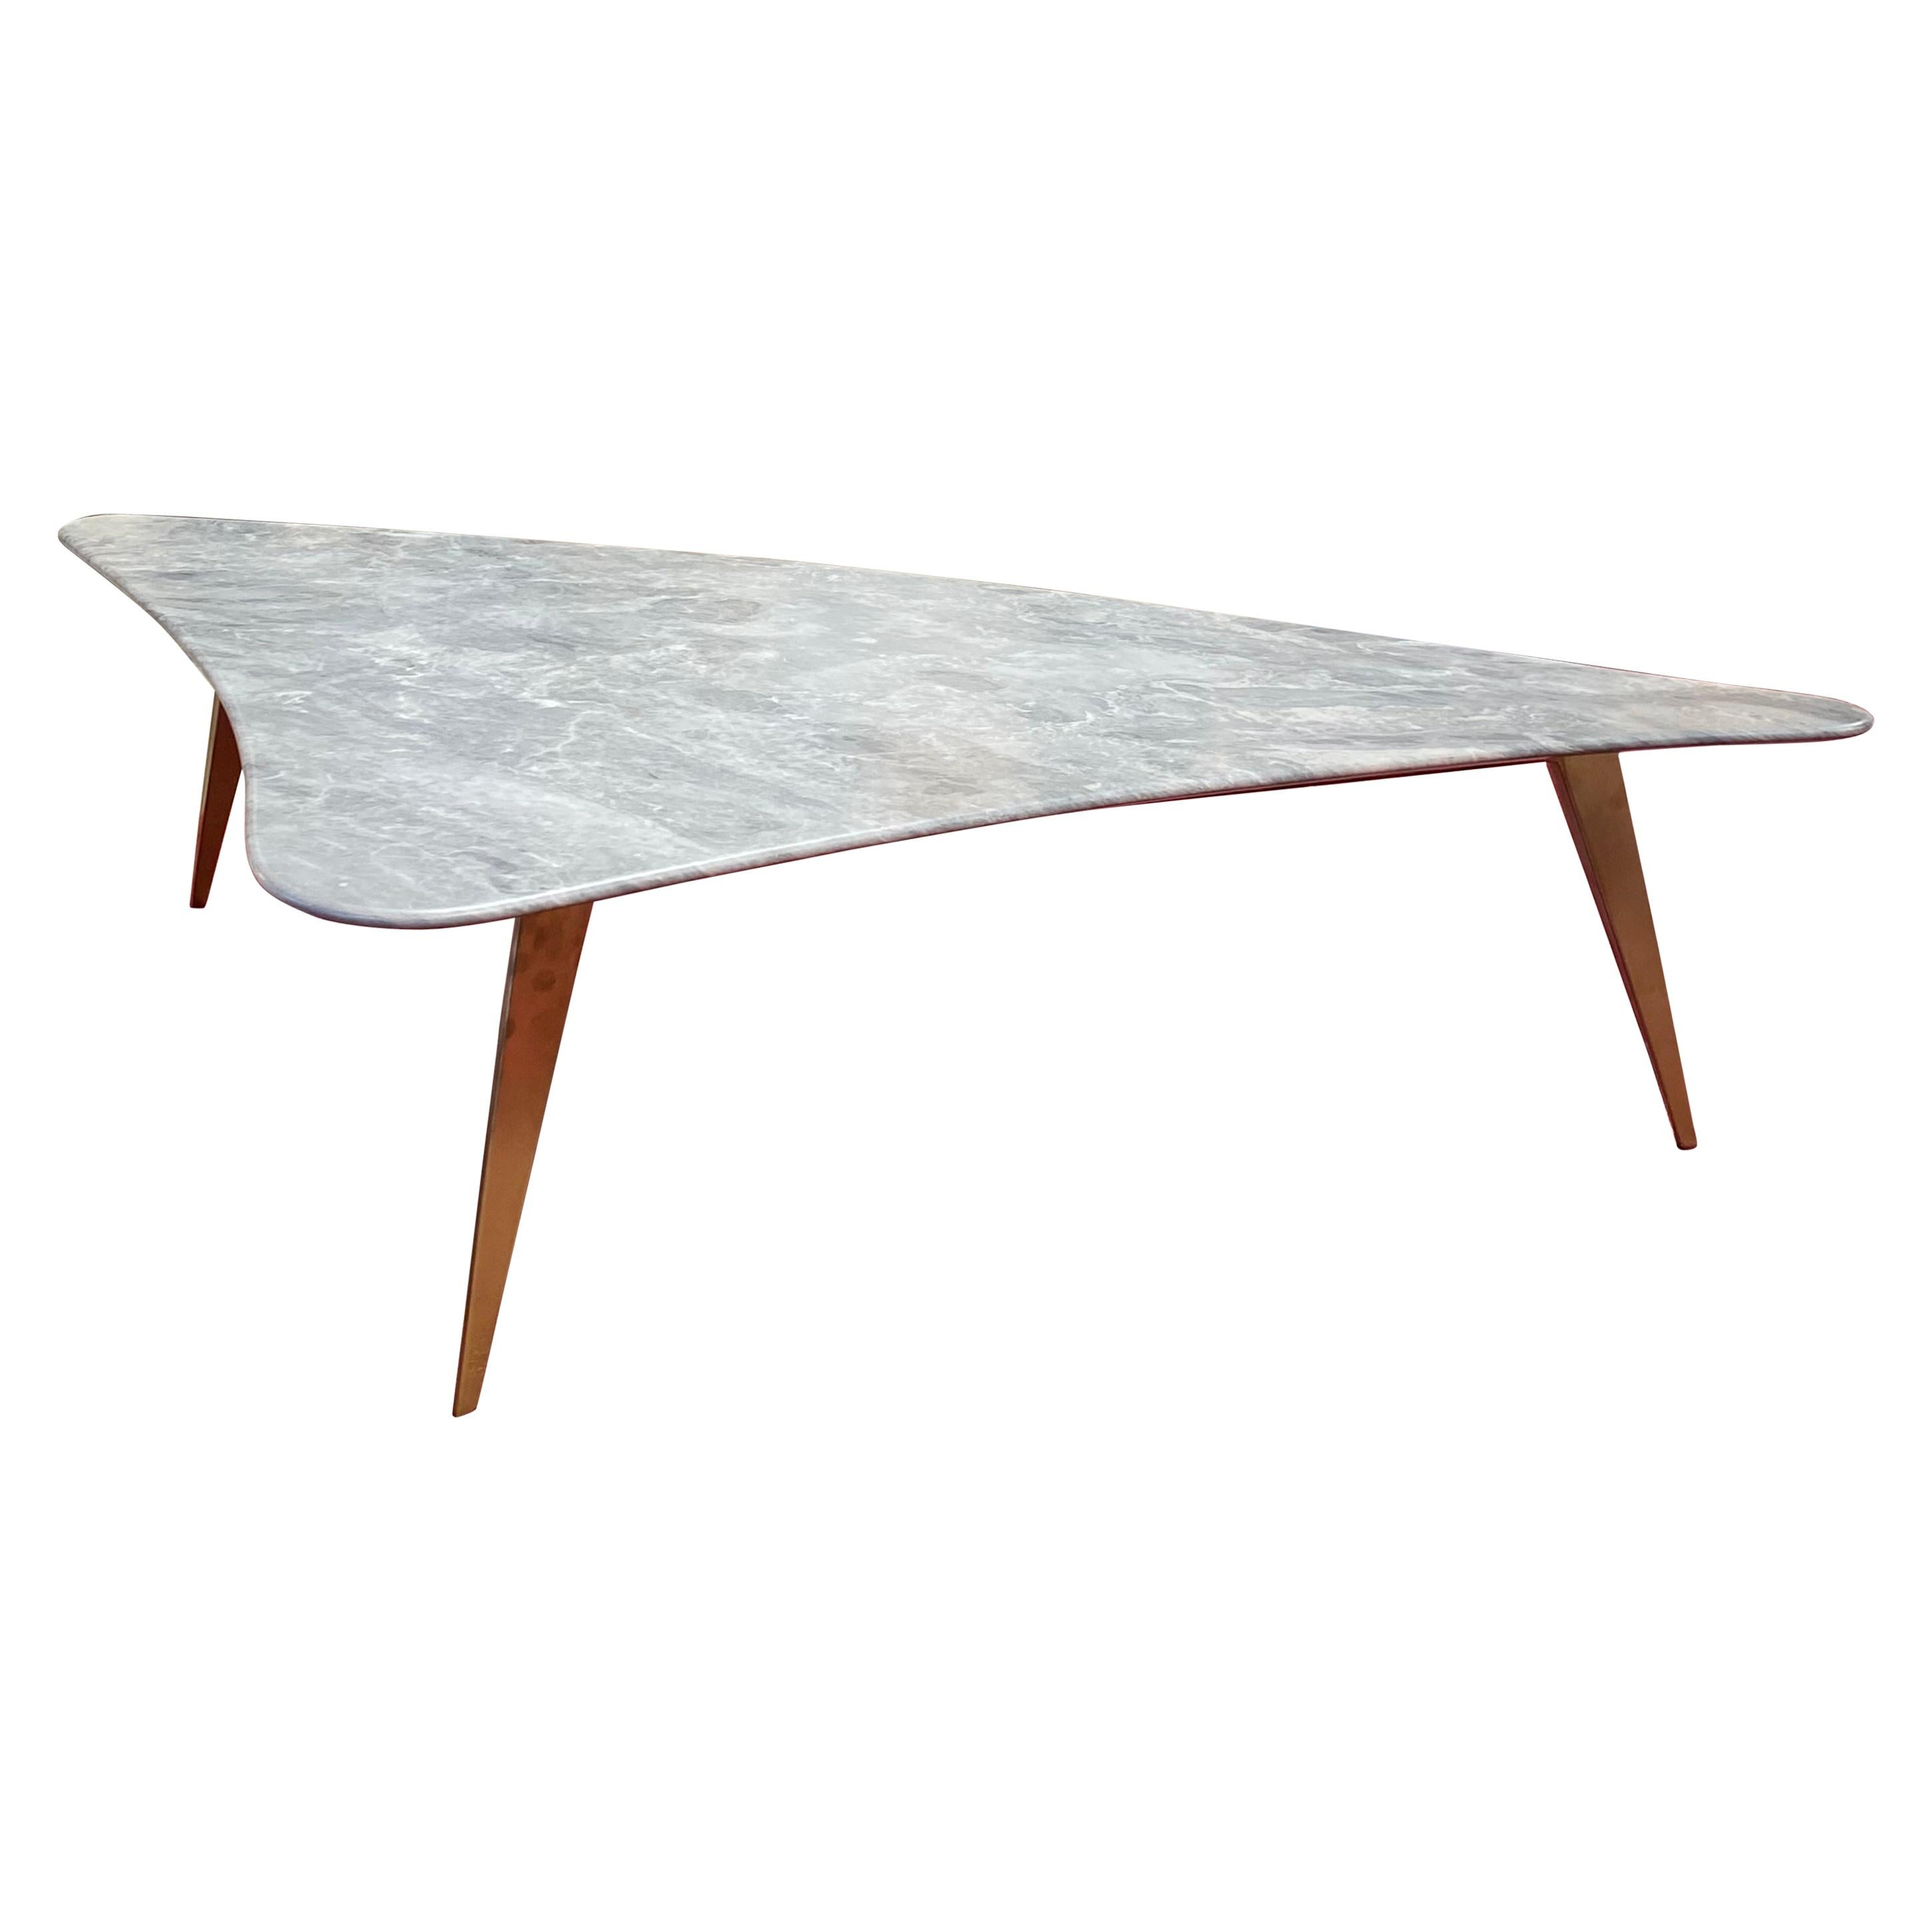 Midcentury Grey Marble and Brass Coffee Table, Italy, 1960s